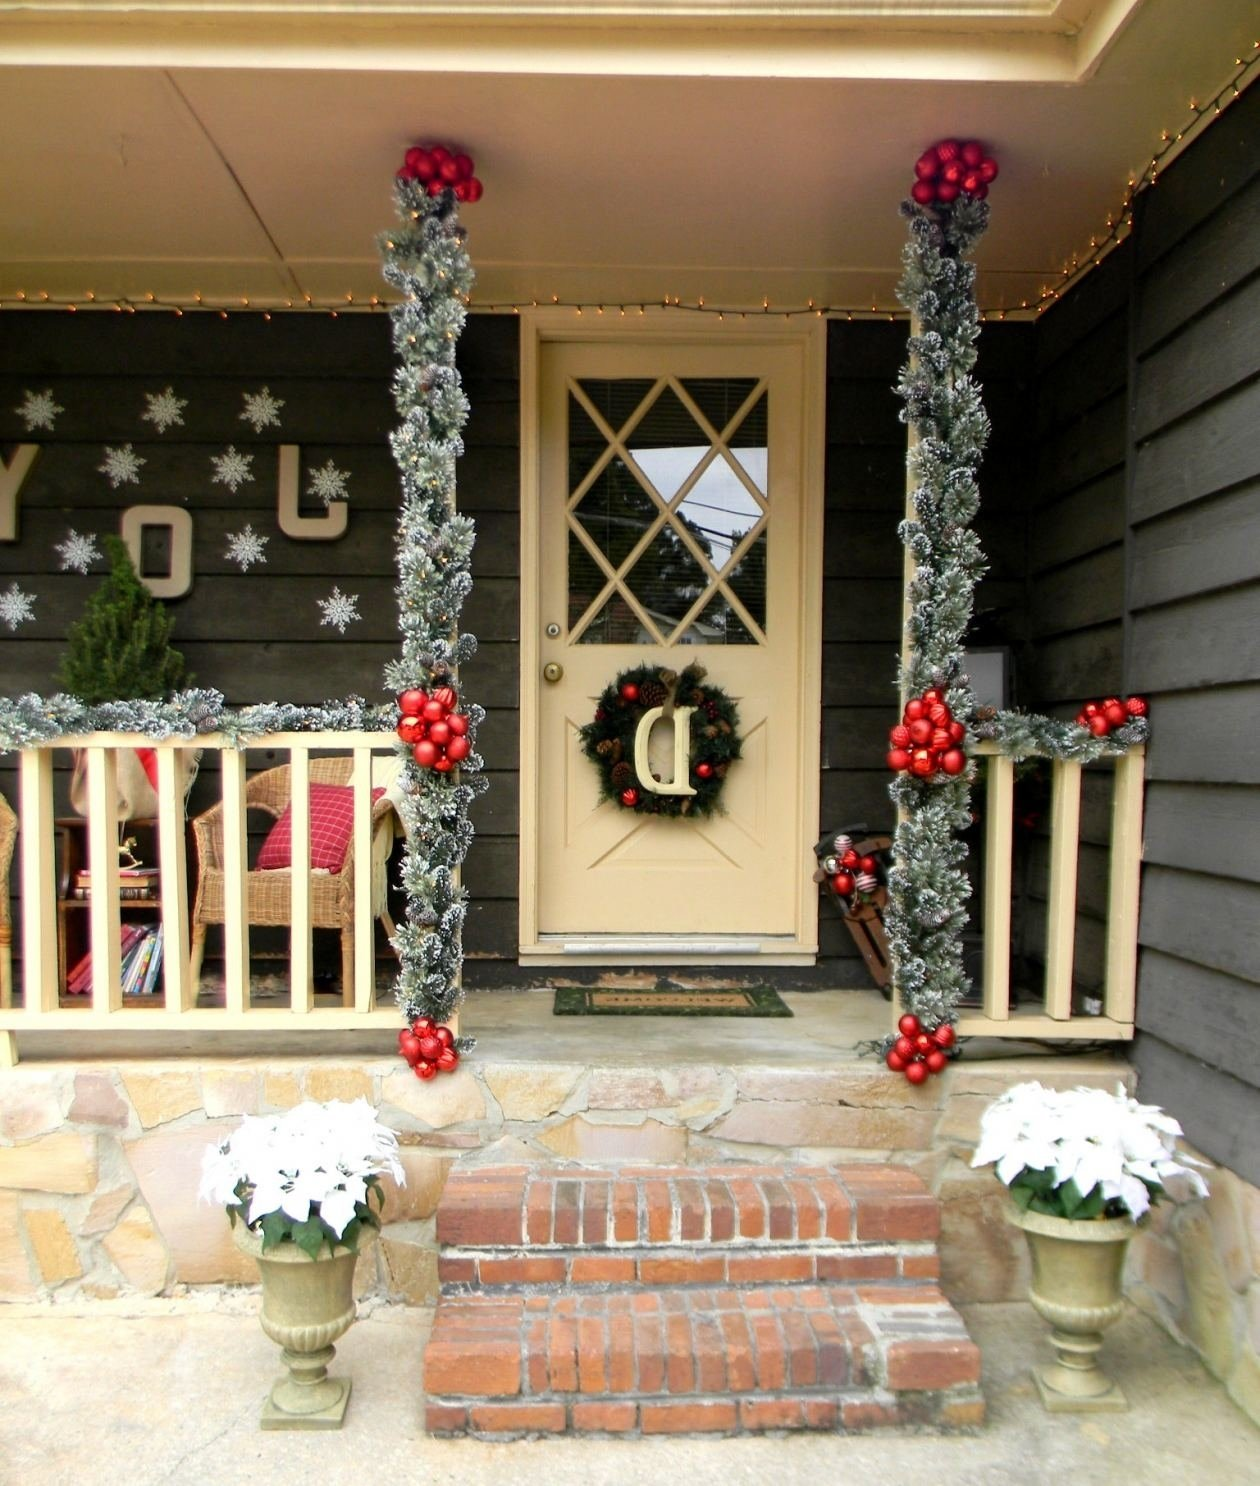 10 Nice Front Porch Christmas Decorating Ideas front porch christmas ideas 3 front porch christmas decorating 2020